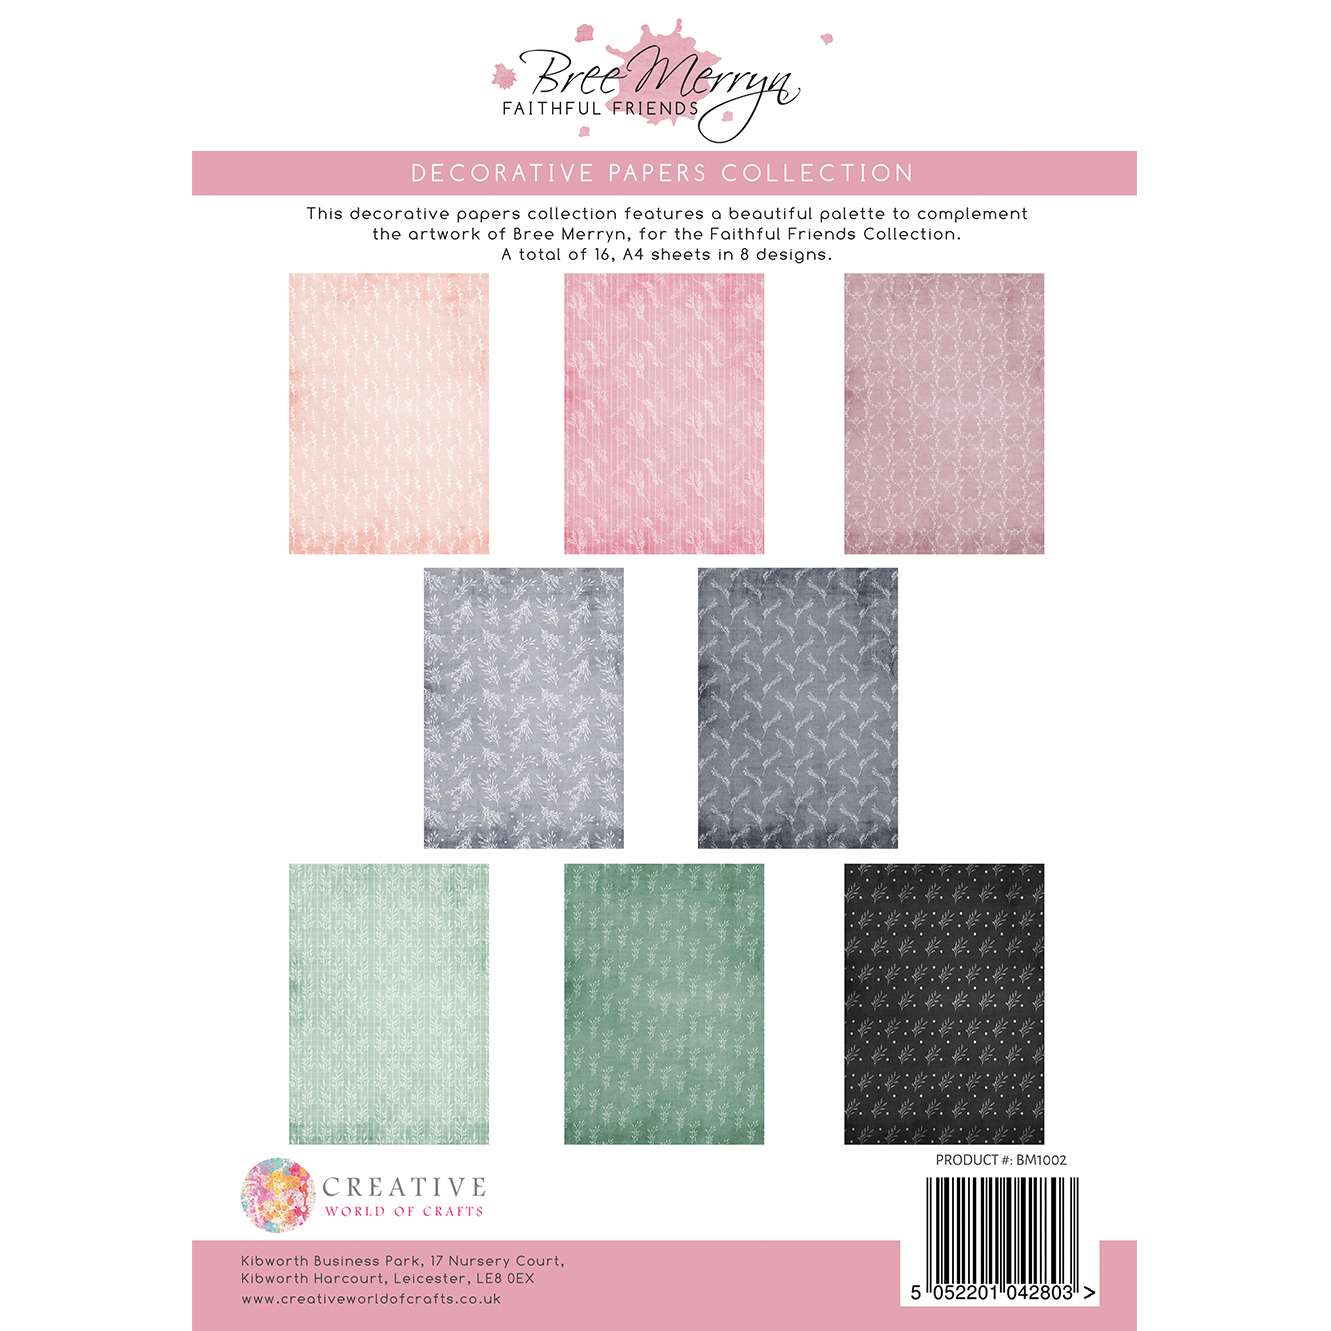 Bree Merryn Faithful Friends A4 Decorative Papers